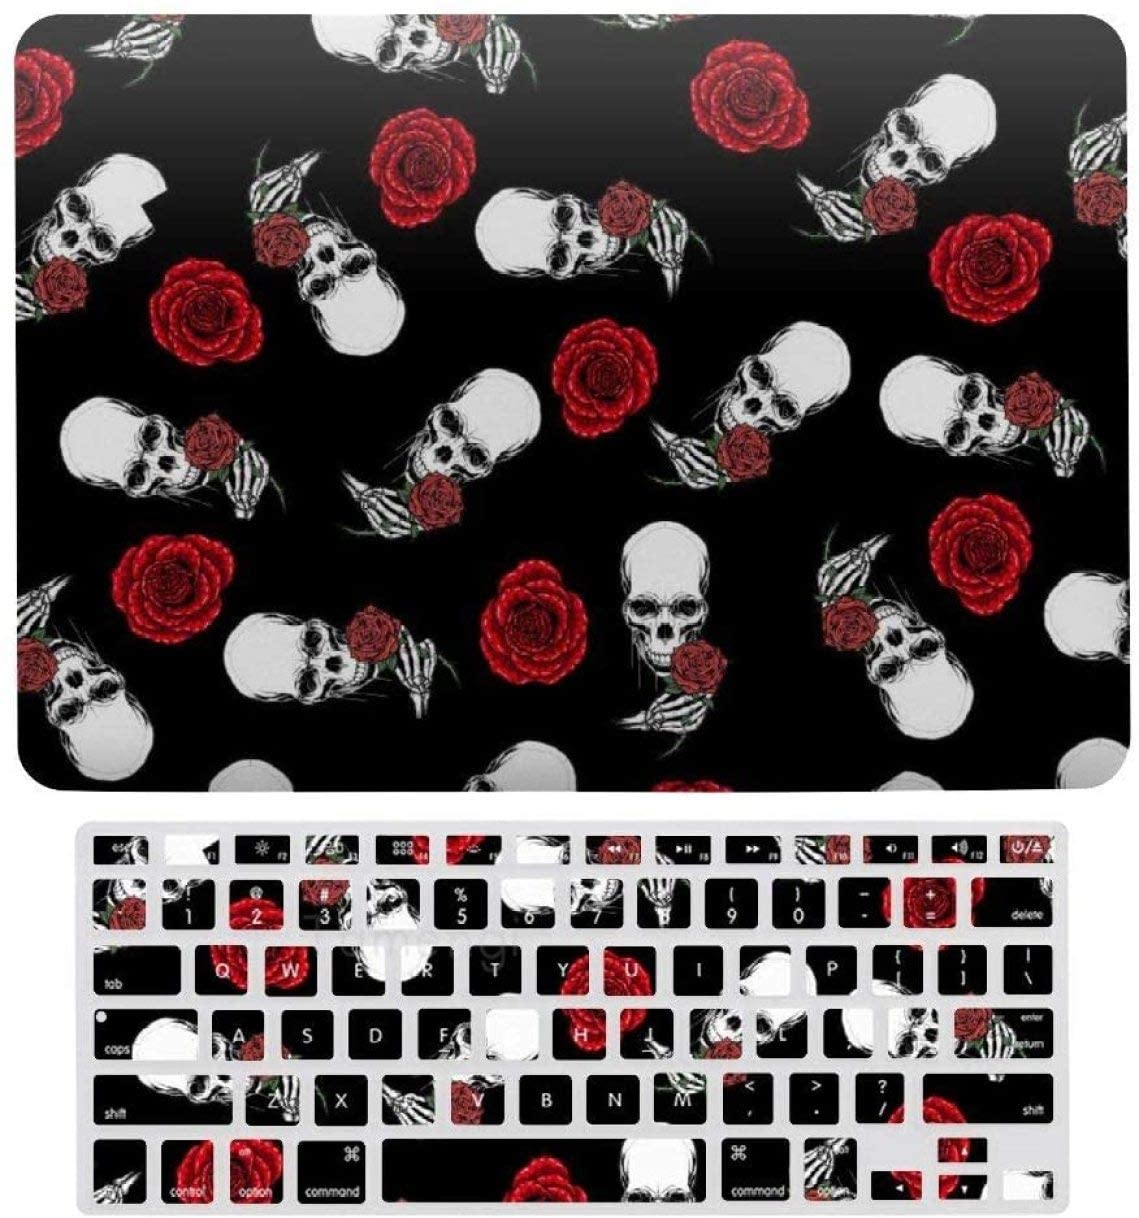 Sugar Skull Rose Style Laptop Keyboard Cover Screen Protector Shell Set for MacBook Air 13 New Pro 13 Touch